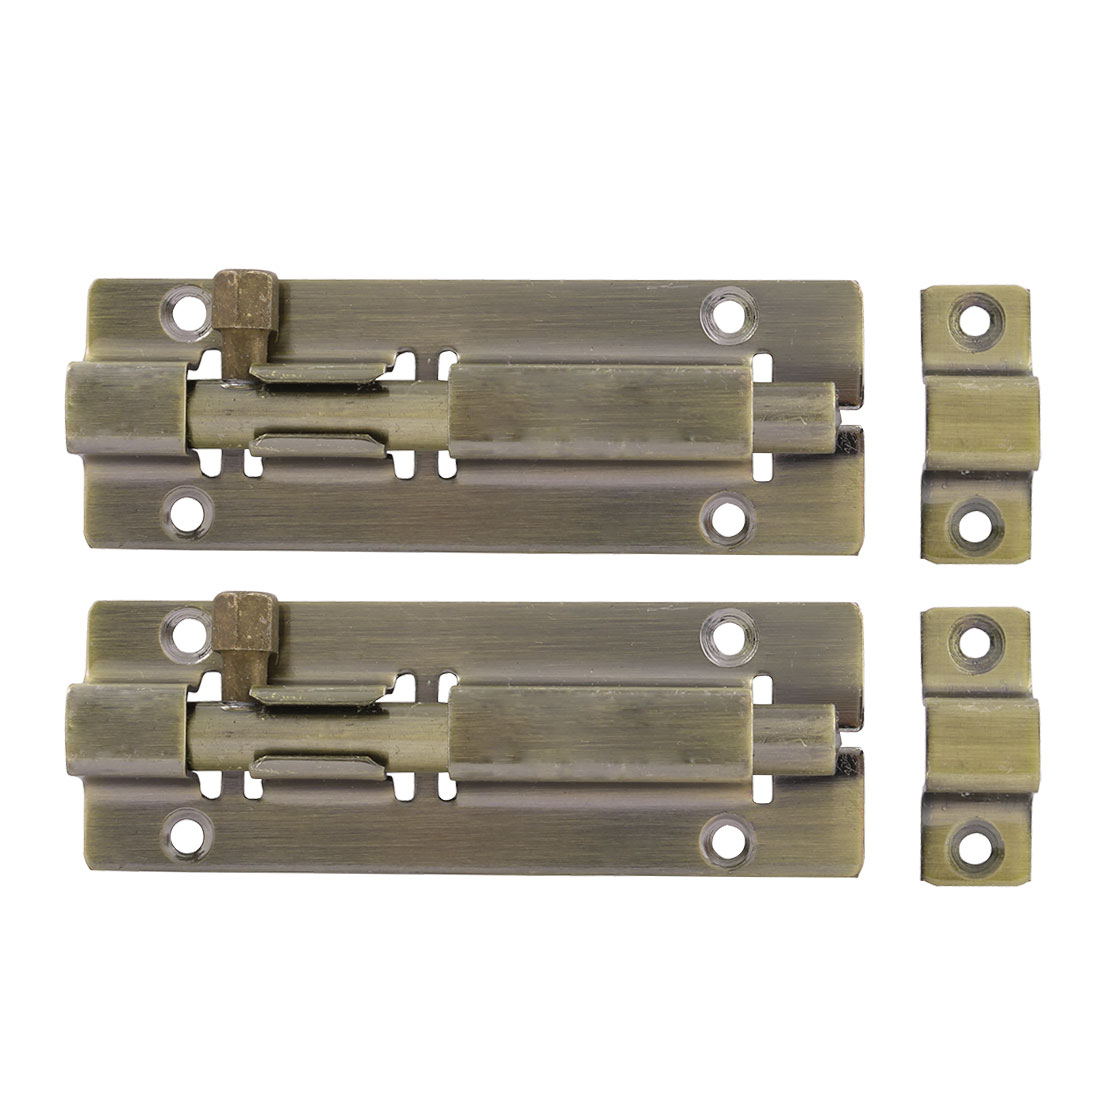 Stainless Steel Door Sliding Lock Barrel Bolt Bronze Tone 4 Inch Length 2 Pcs